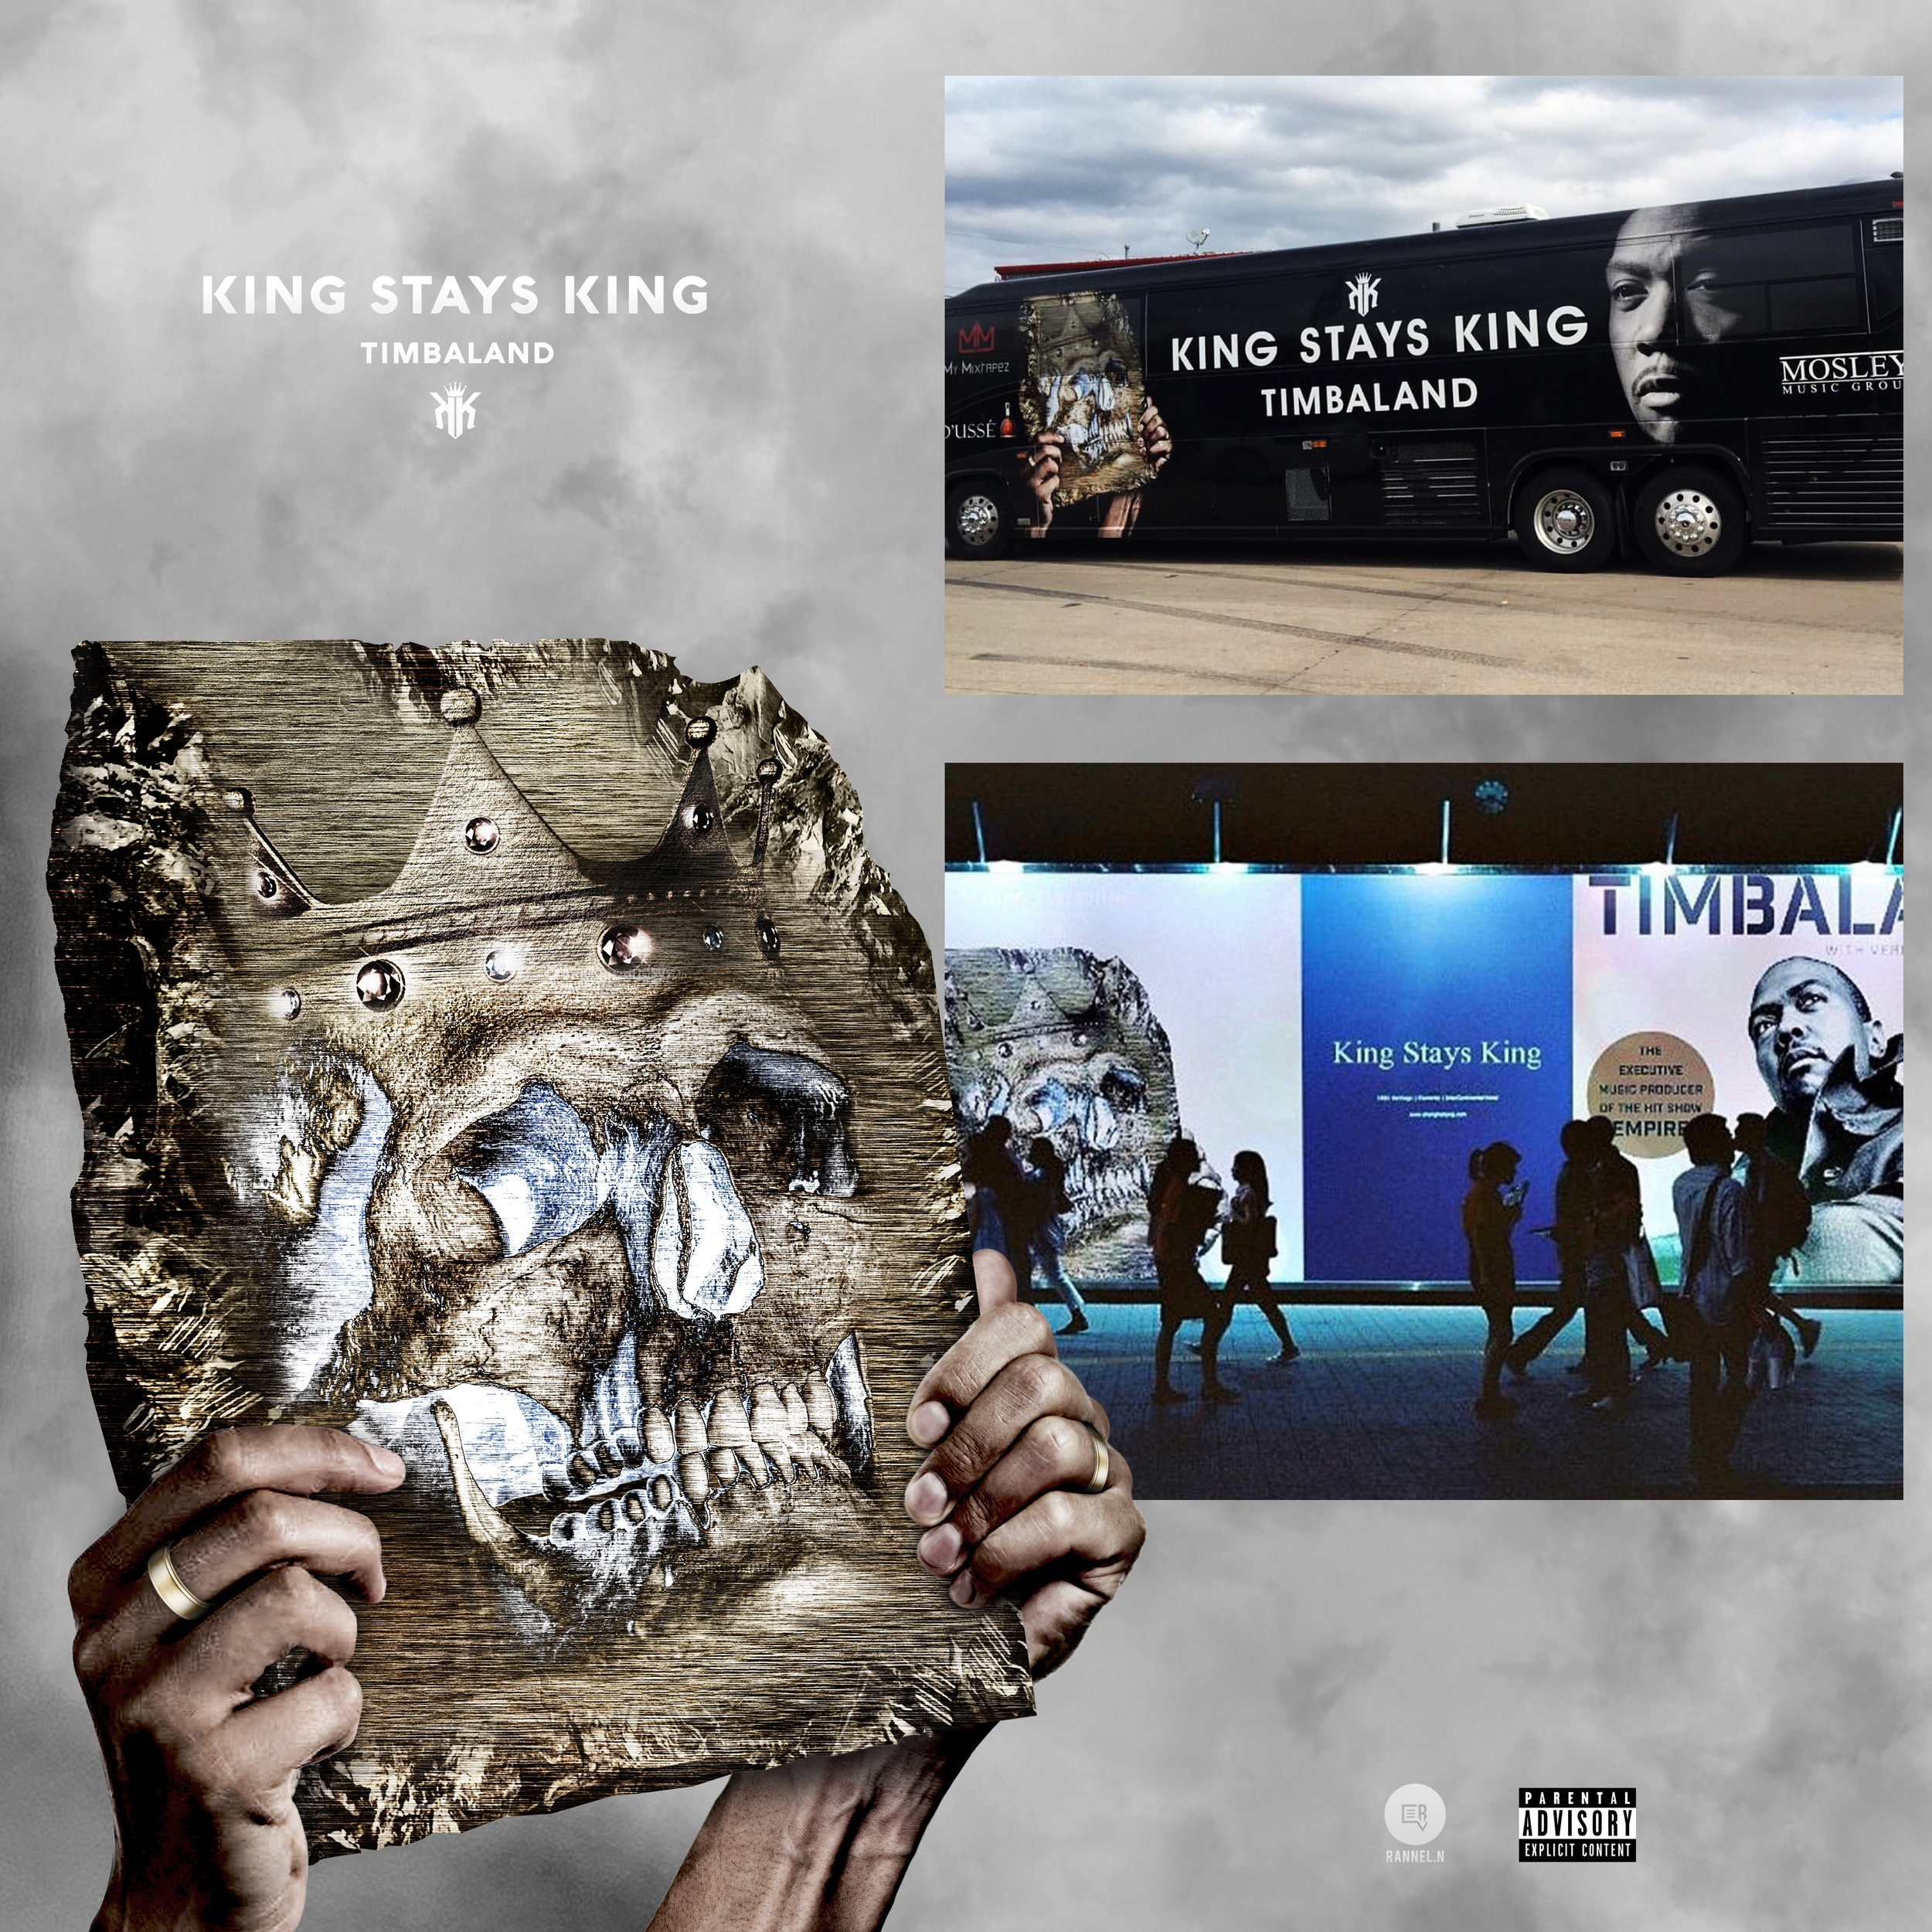 Timbaland album cover, billboard, & tour bus designed by Rannel Ngumuya for the King Stays King Tour. ( October 30th, 2016 )